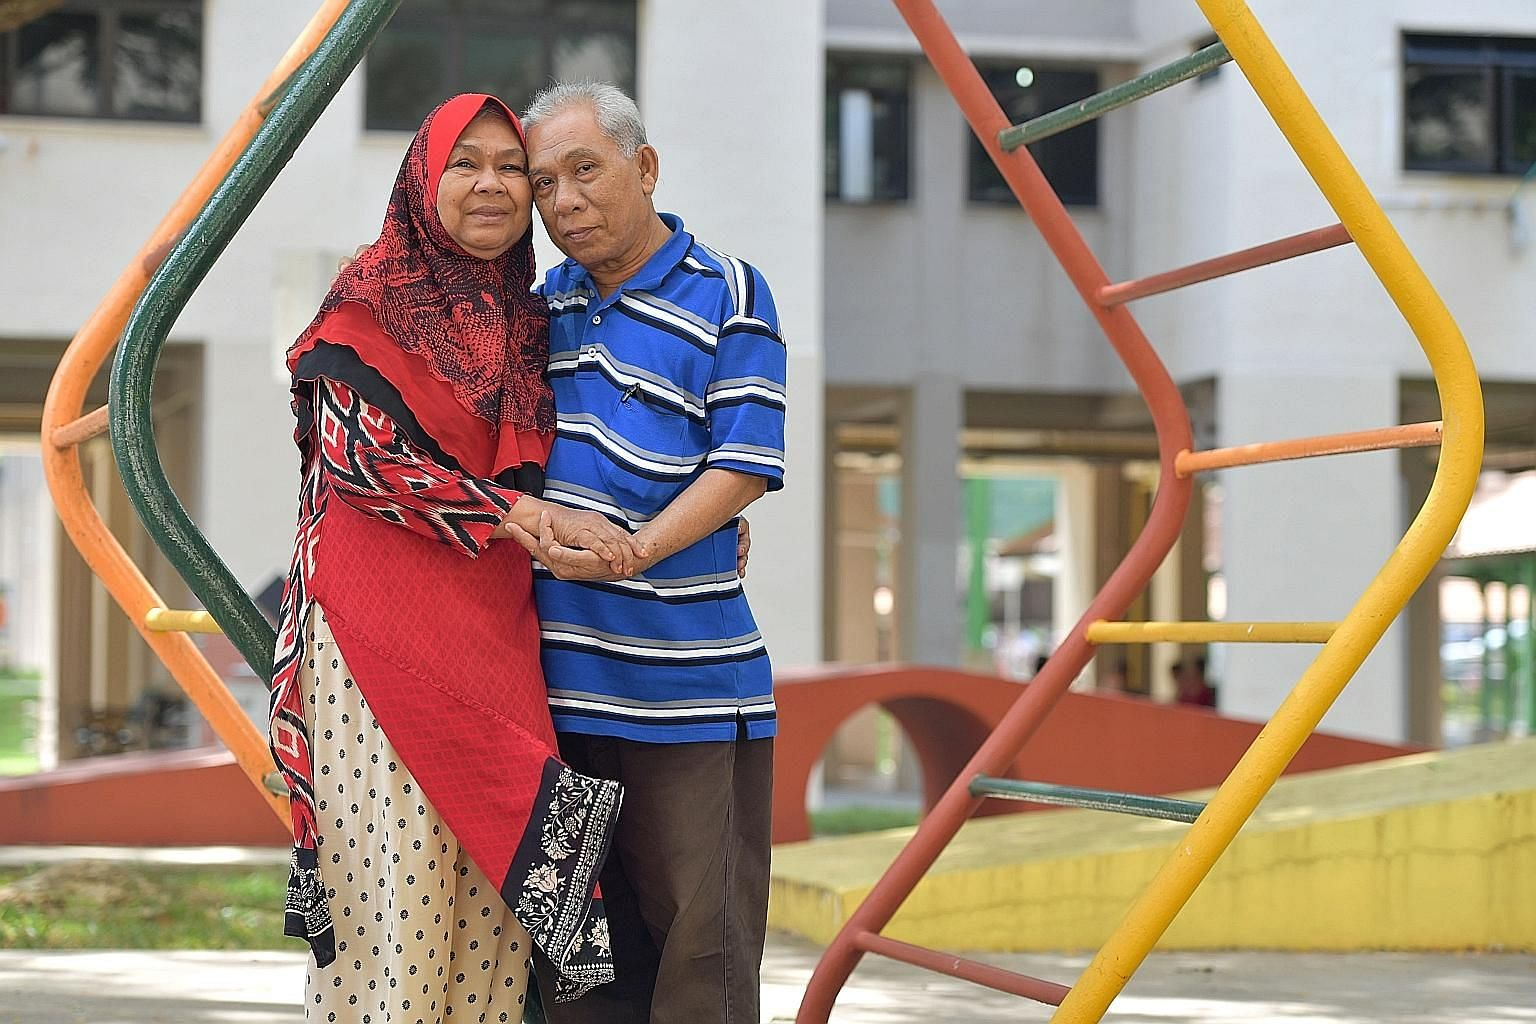 Mr Ismail Sapuan and Madam Mariah Abdul Hamid met in March at a seniors activity centre and got married last month.